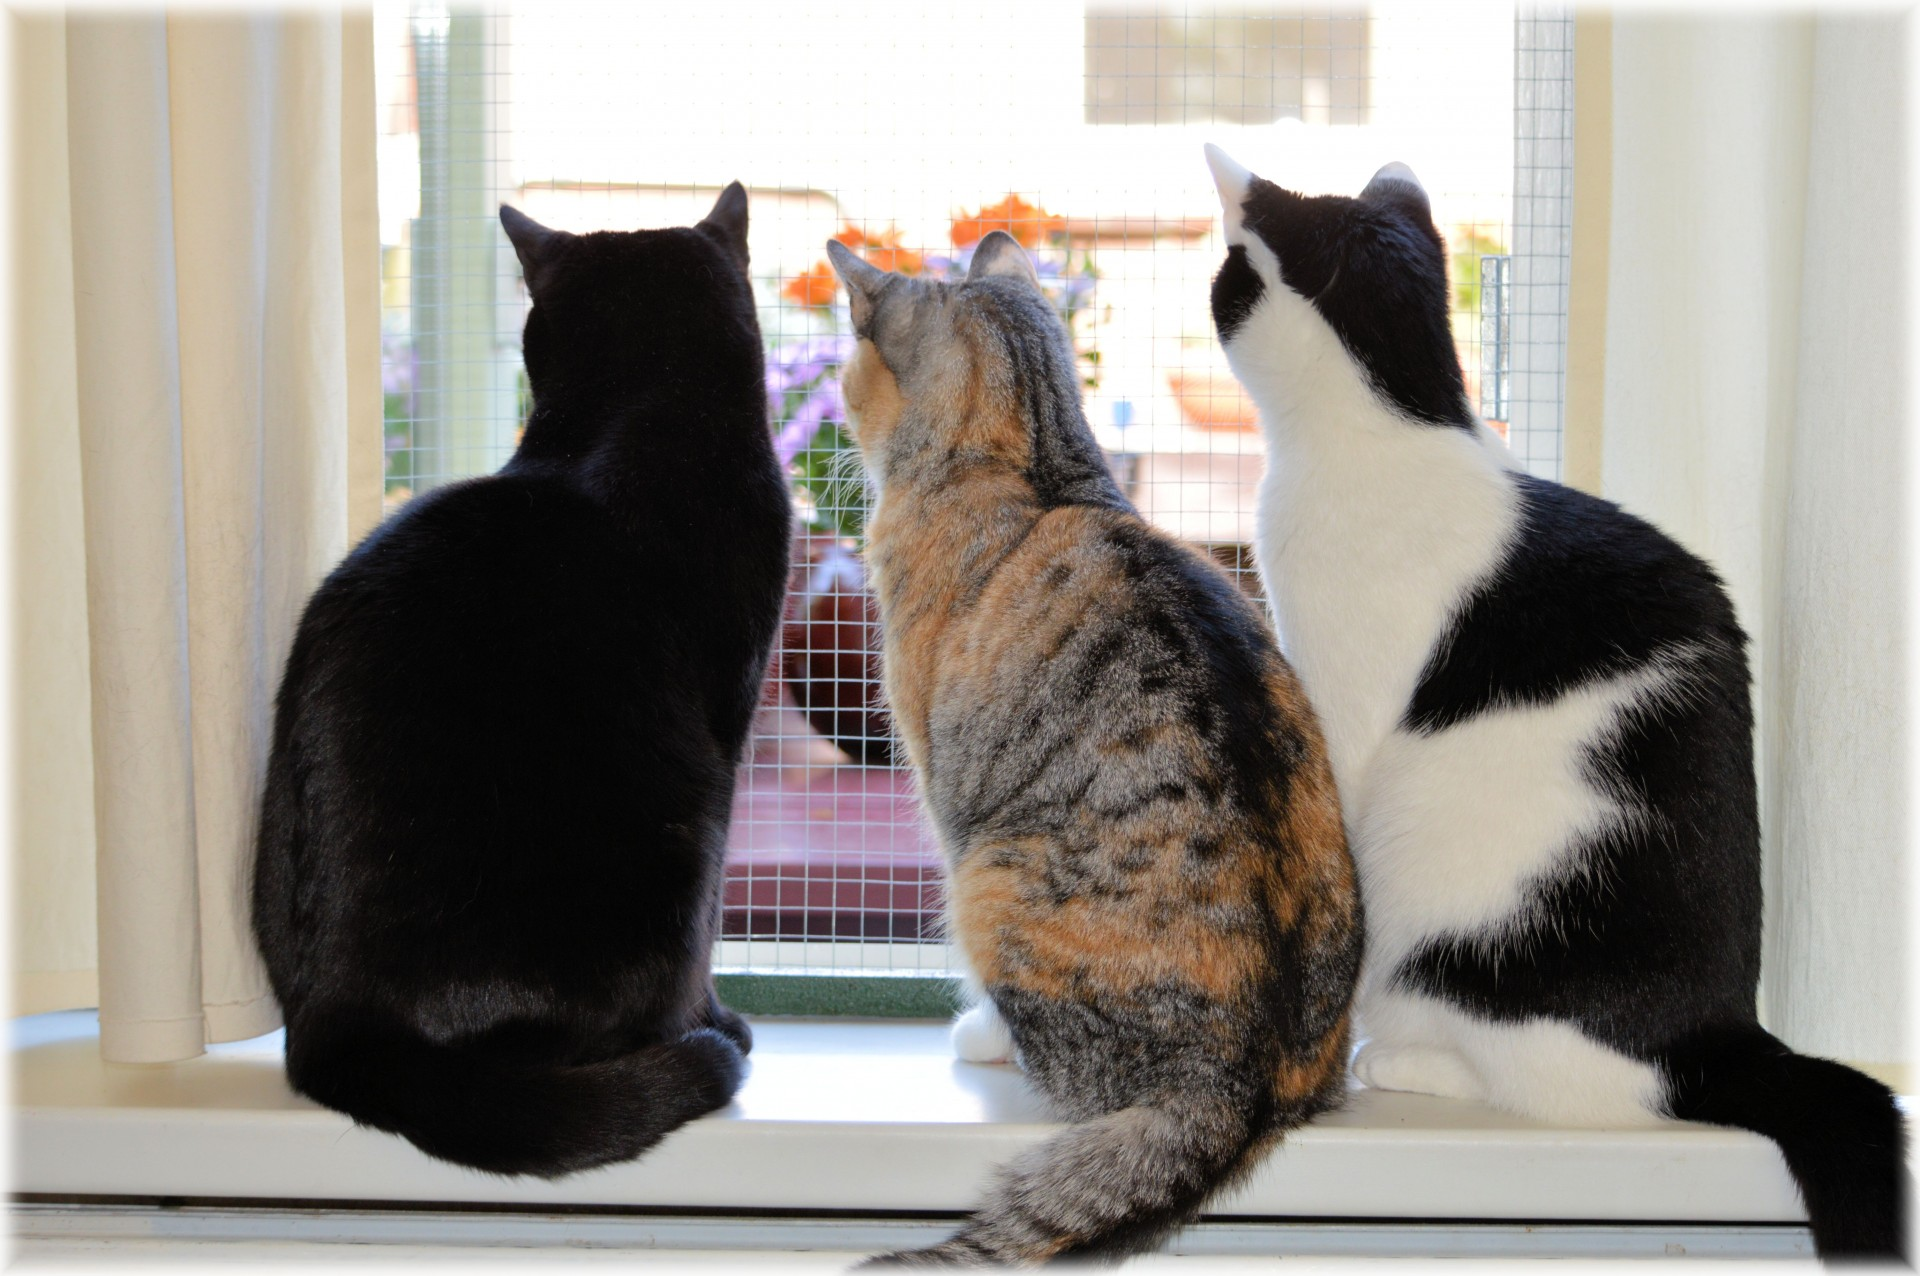 Window, Cats, View from the Window, From Behind the Pen